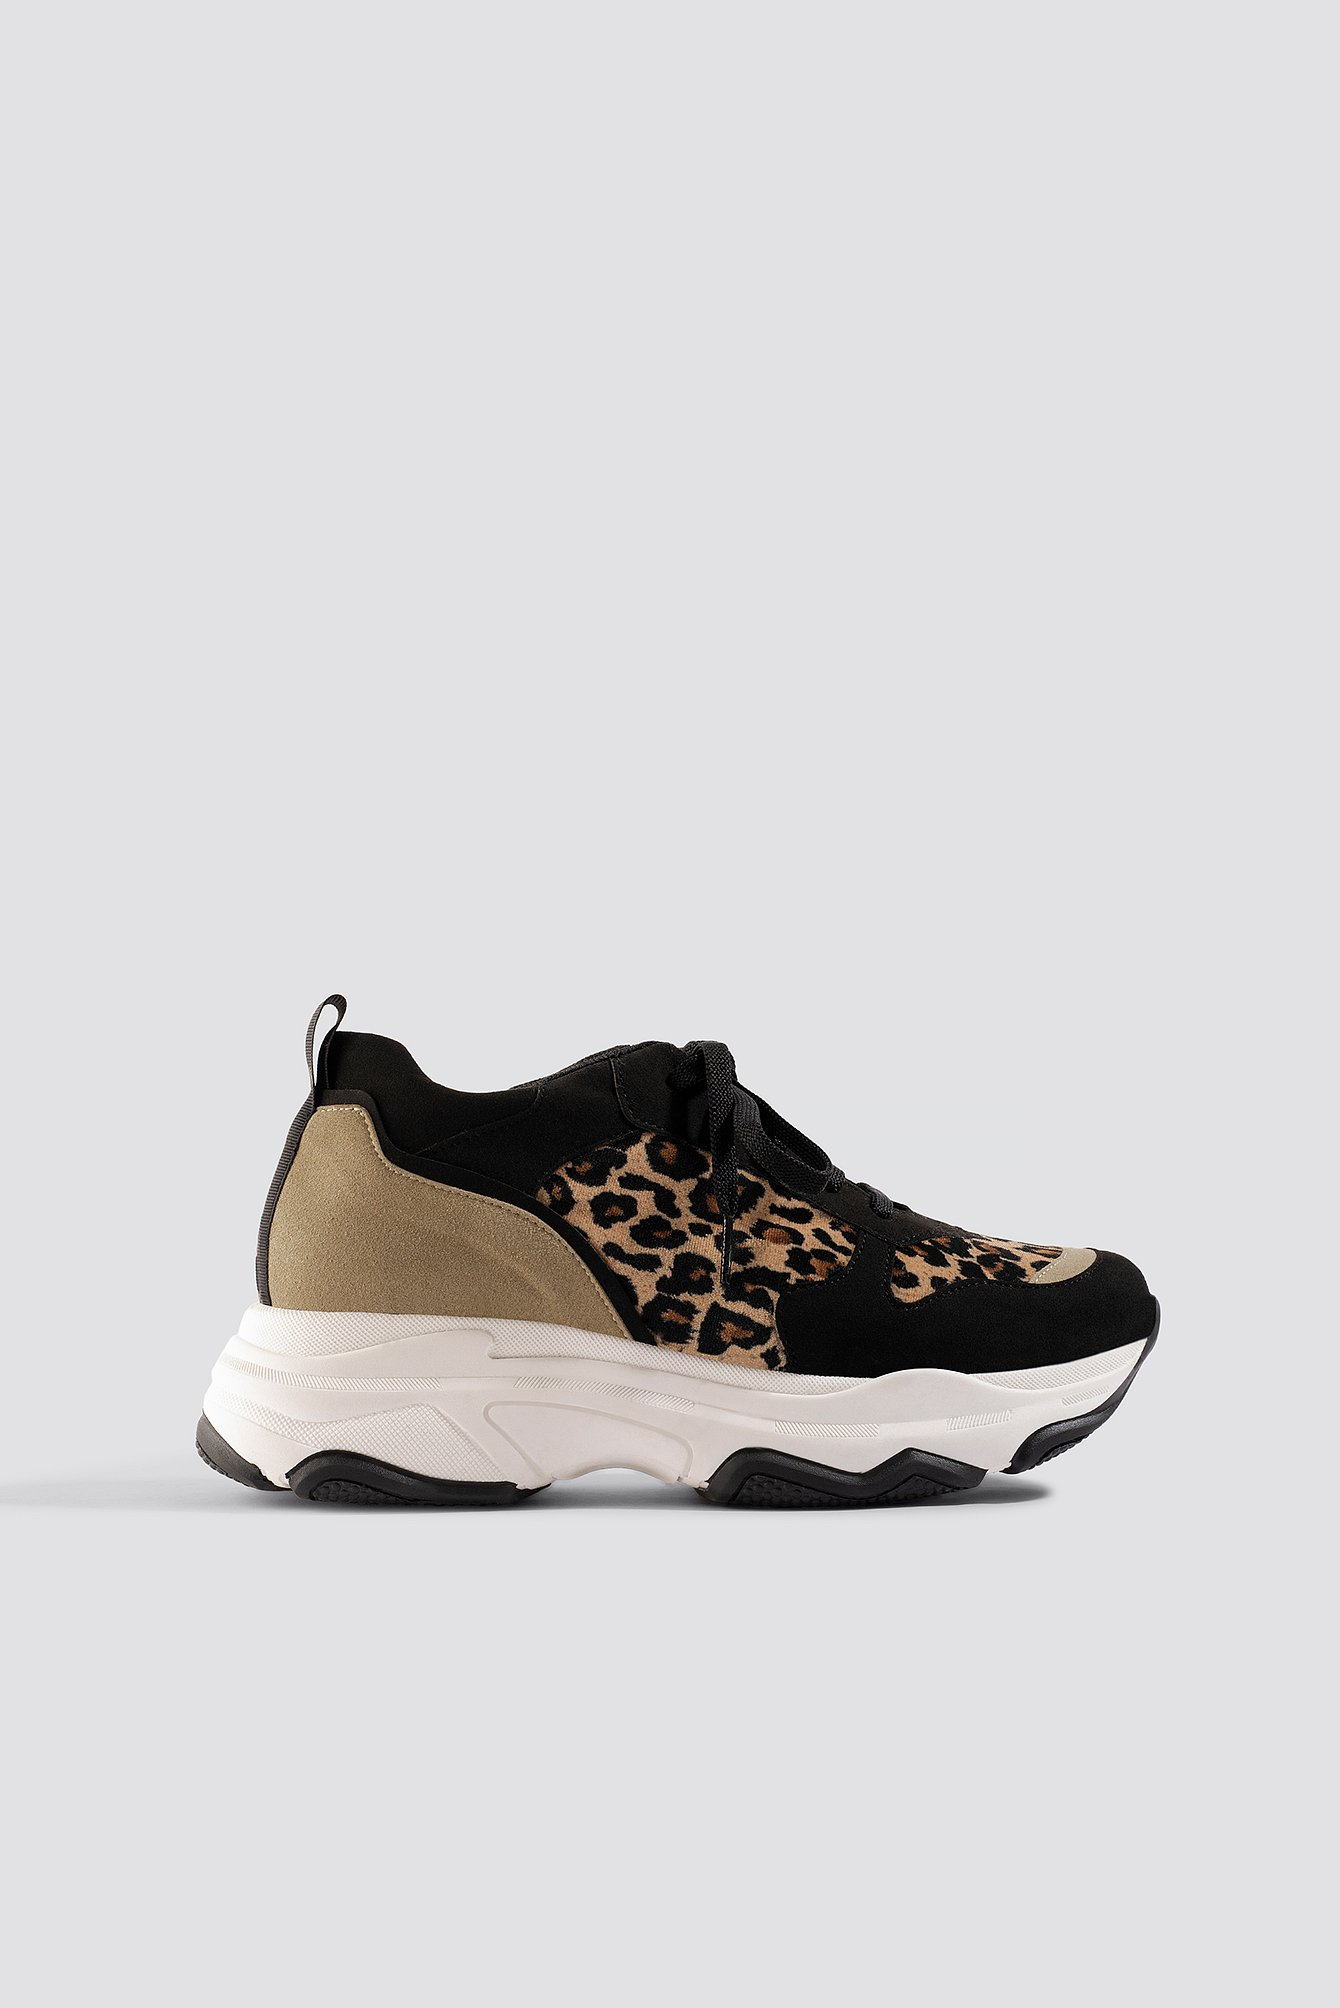 na-kd shoes -  Leopard Chunky Trainers - Black,Brown,Multicolor